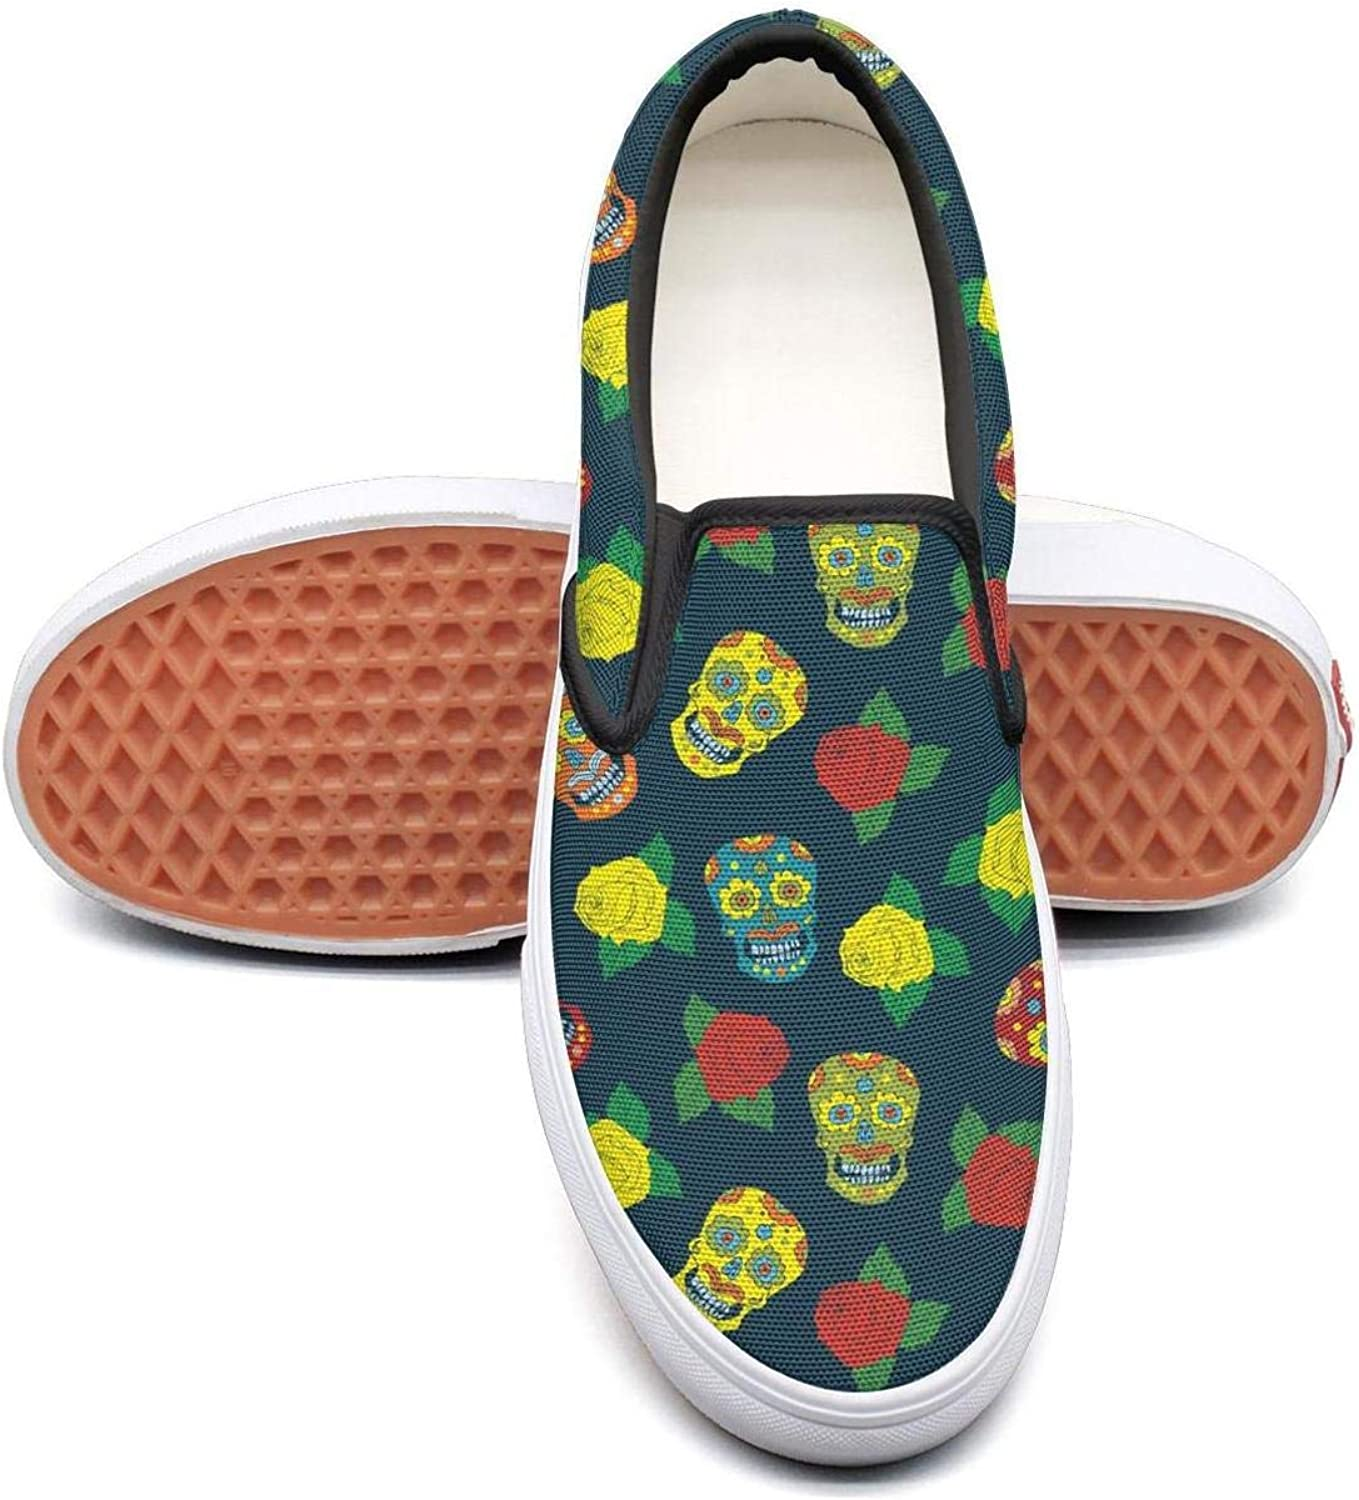 bluee colorful Loungefly Skull Make Up Slip On Rubber Sole Loafers Canvas shoes for Women Casual